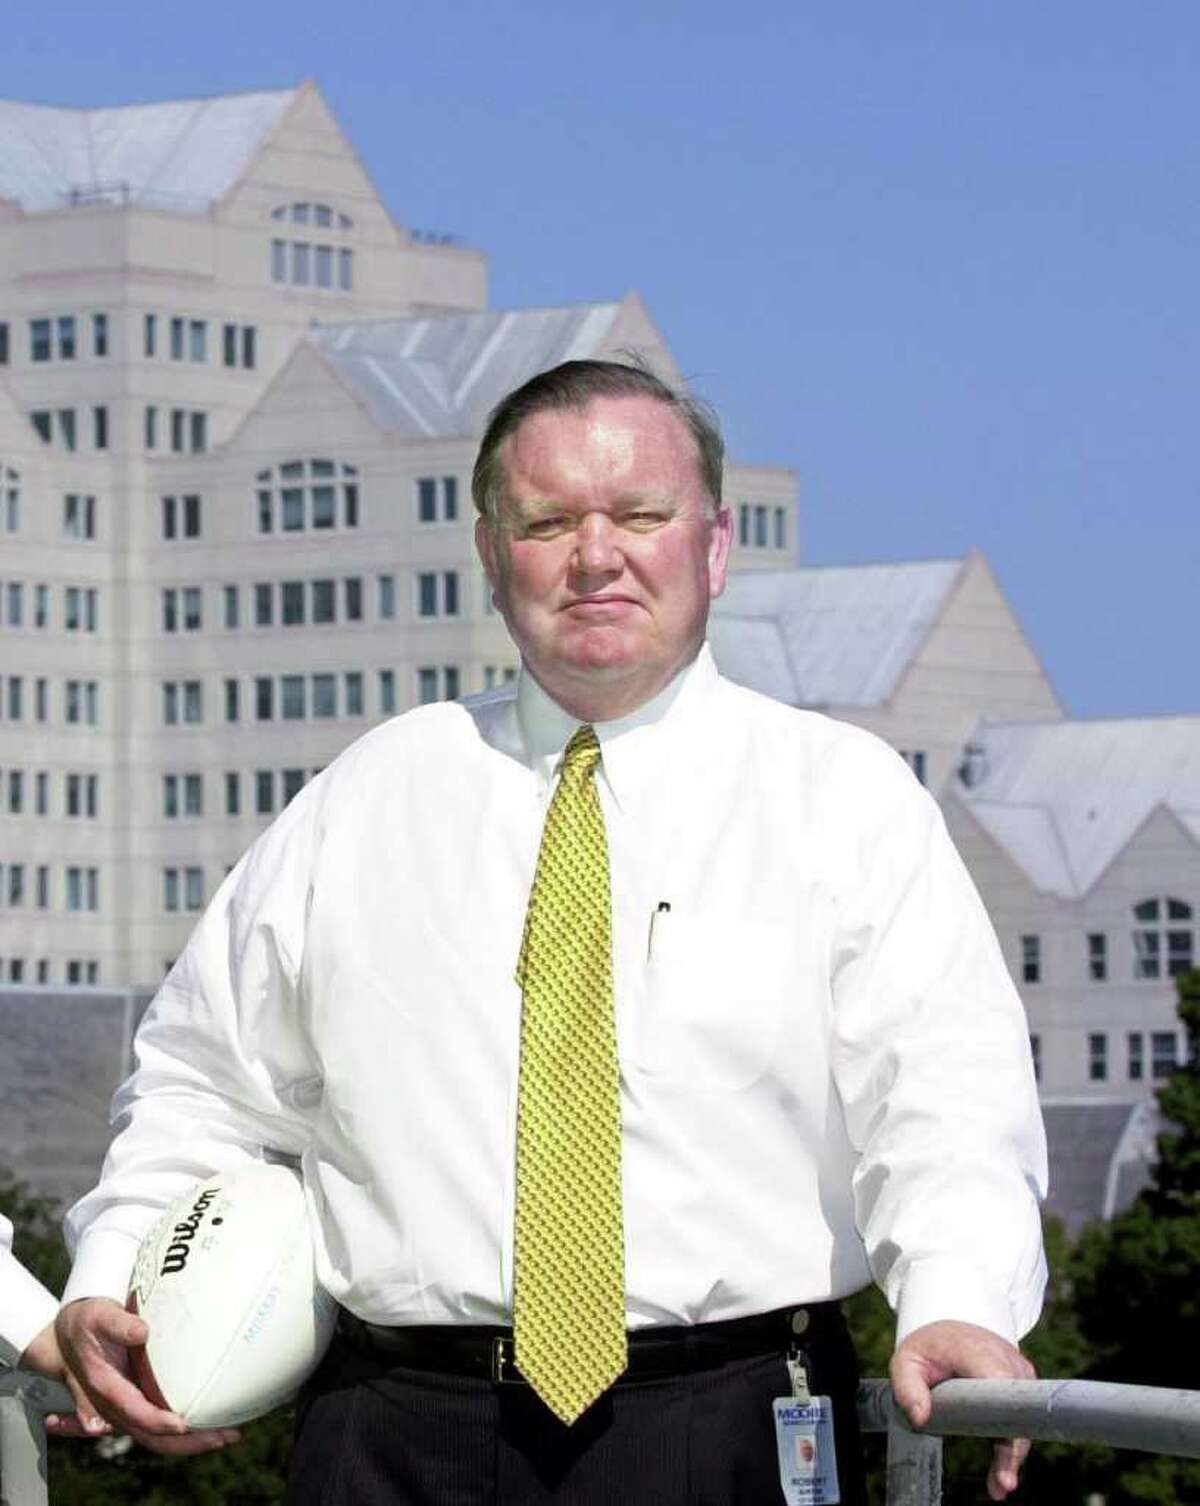 Greenwich resident Robert Burton in 2001. The University of Connecticut has apparently made amends with longtime donor Burton, who last month asked for millions back after a disagreement over the selection of the new UConn football coach.